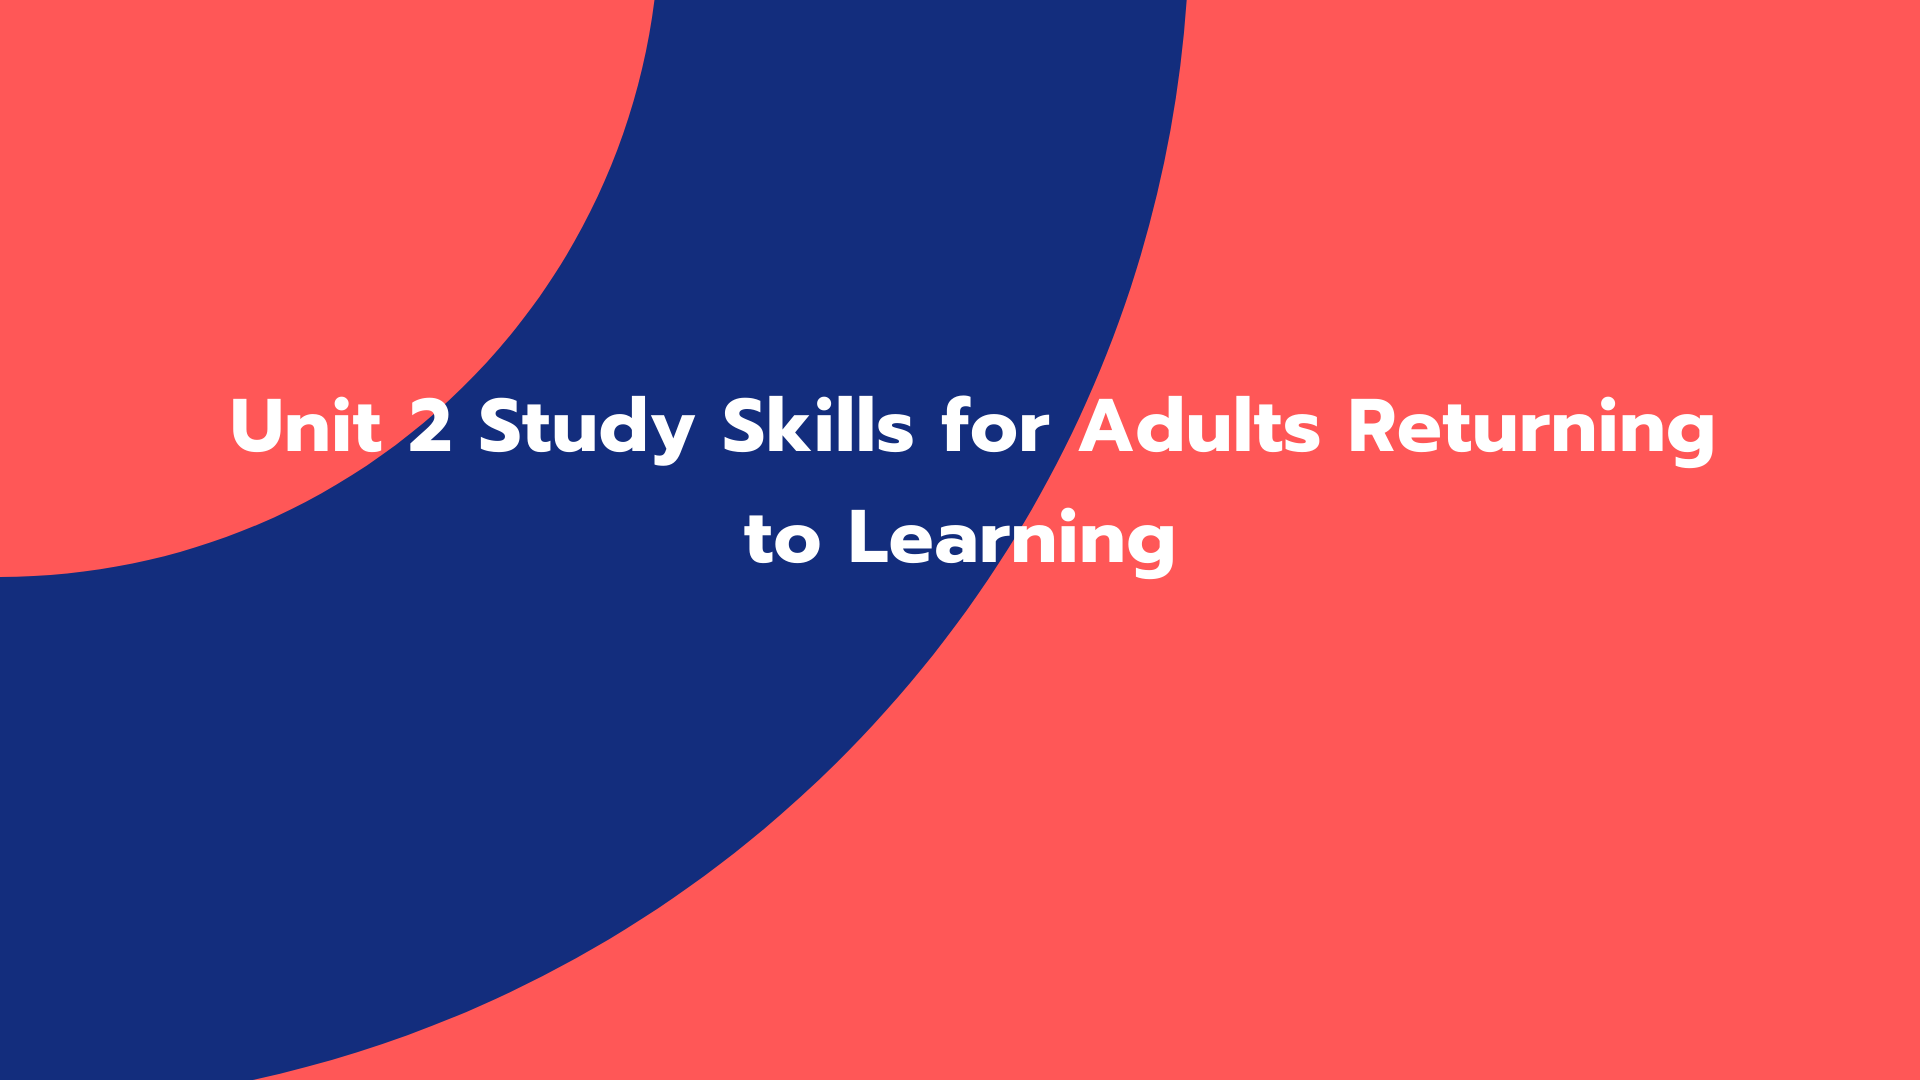 Unit 2 Study Skills for Adults Returning to Learning